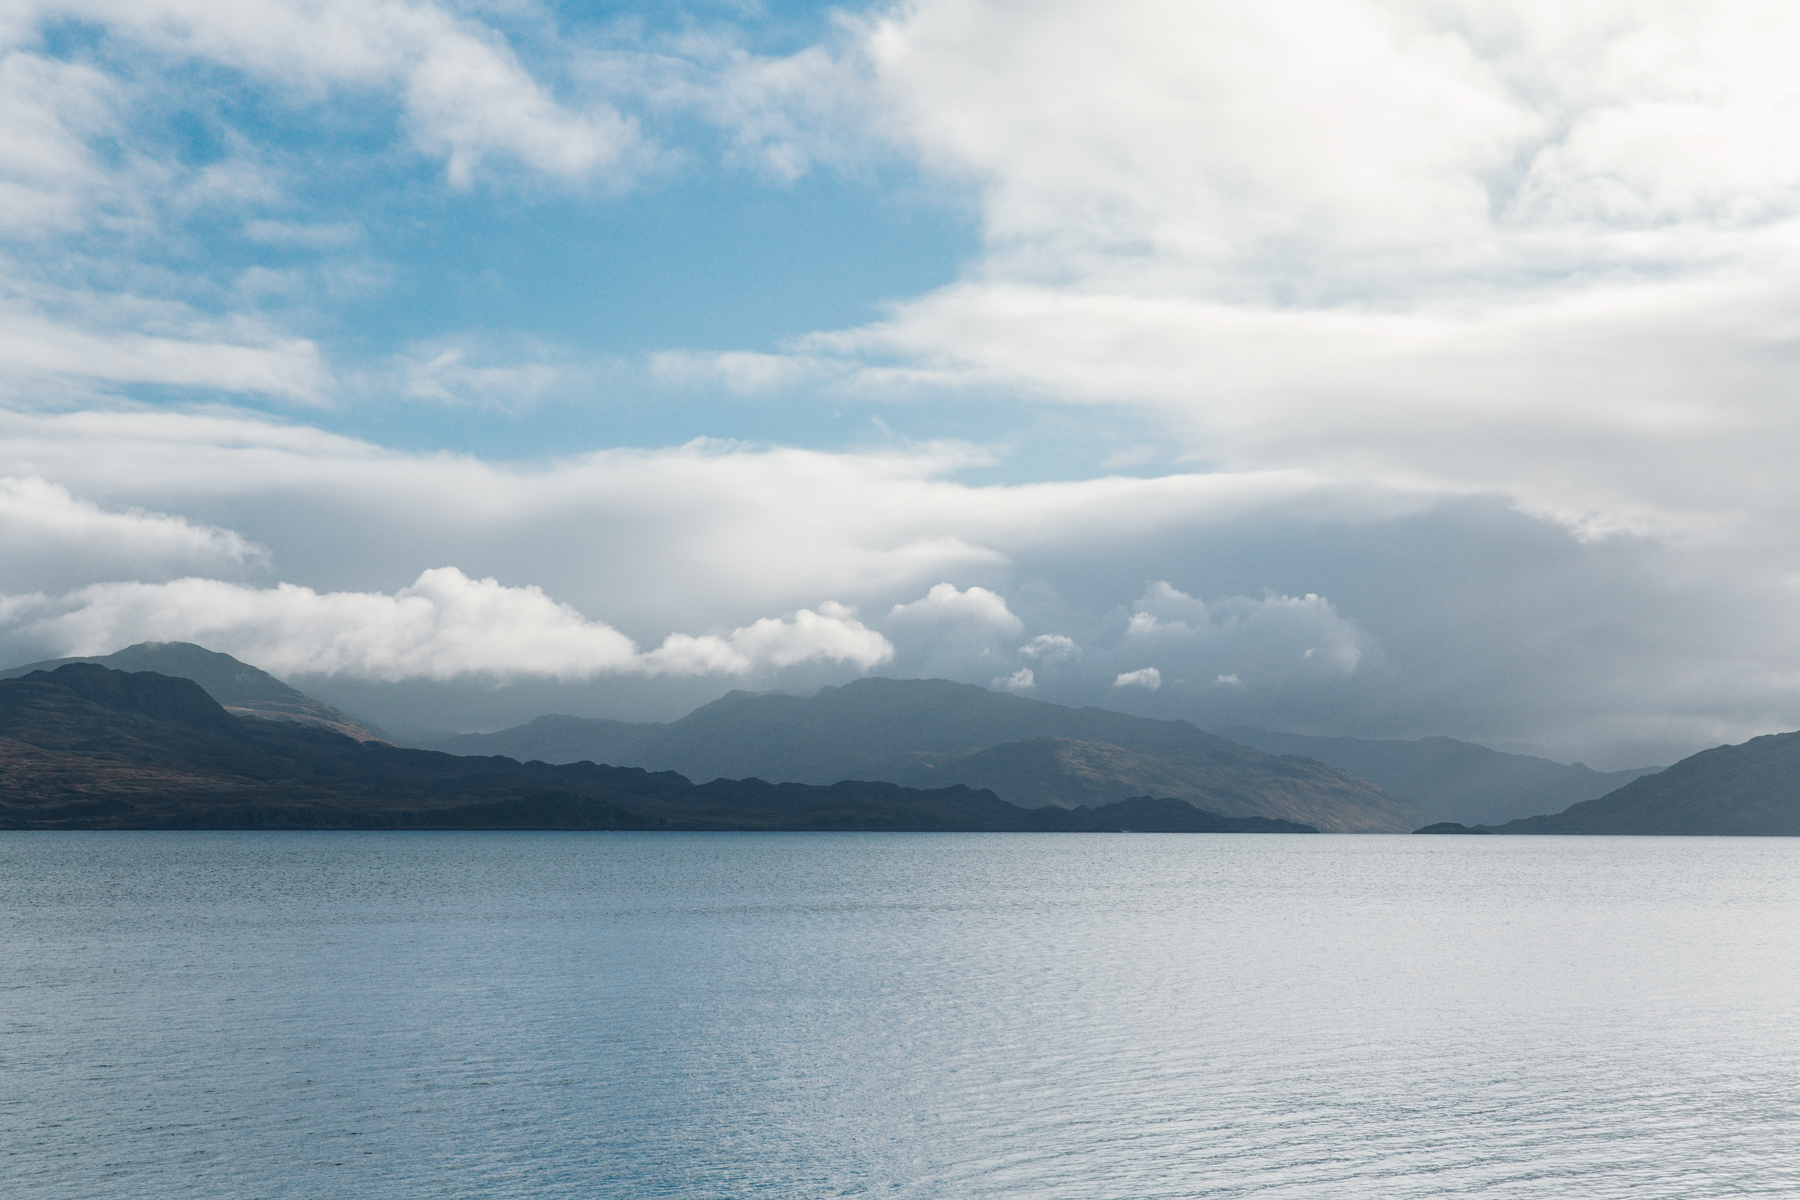 The view from Armadale on the Isle of Skye.